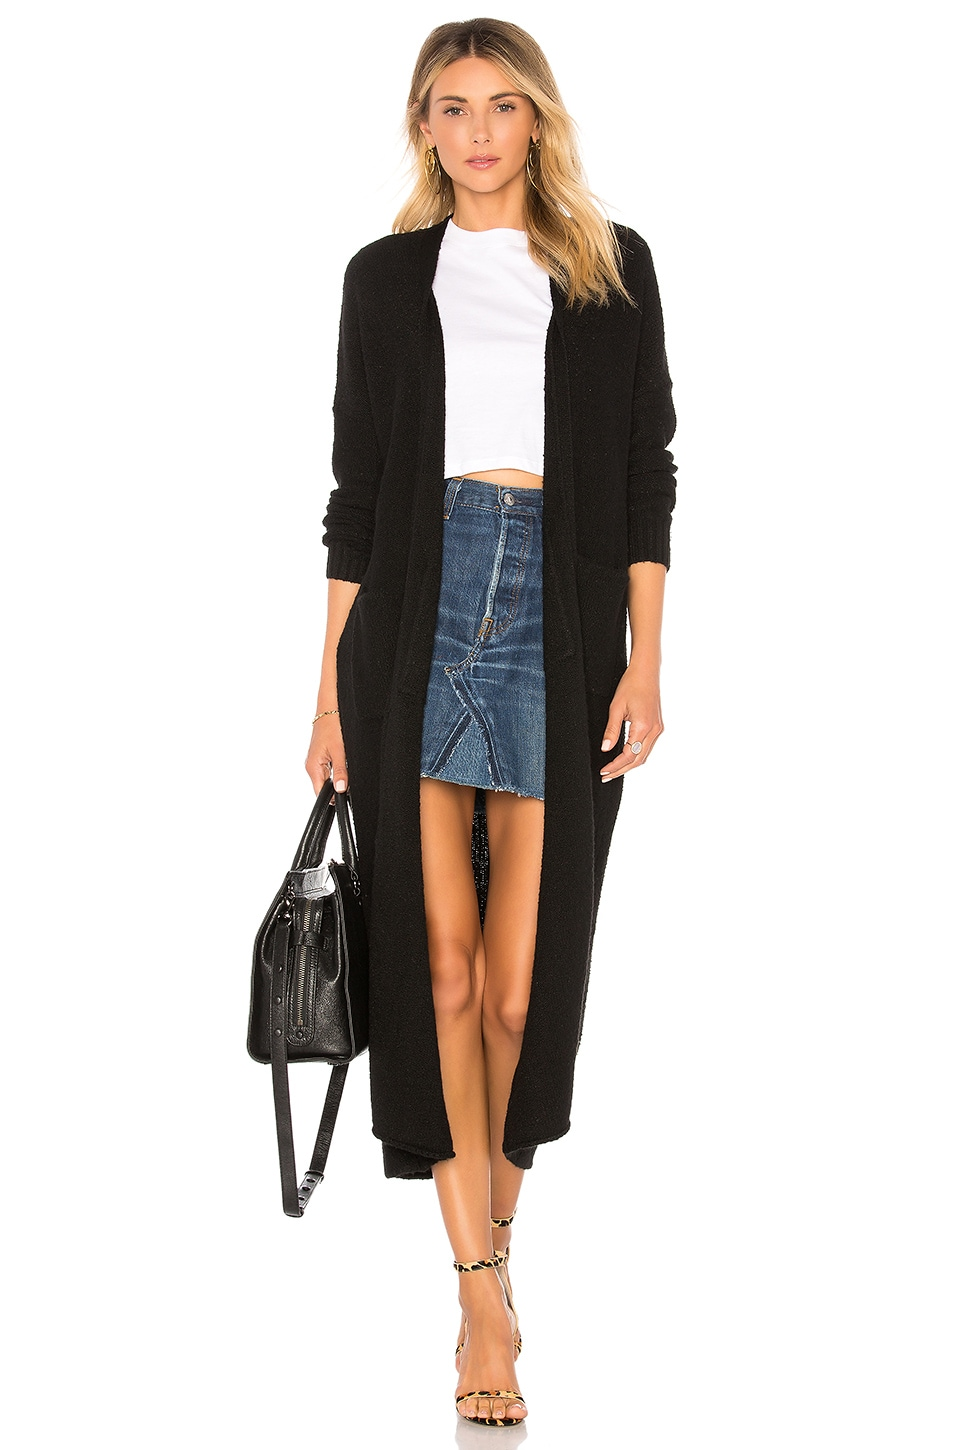 House of Harlow 1960 x REVOLVE Nico Duster in Coal